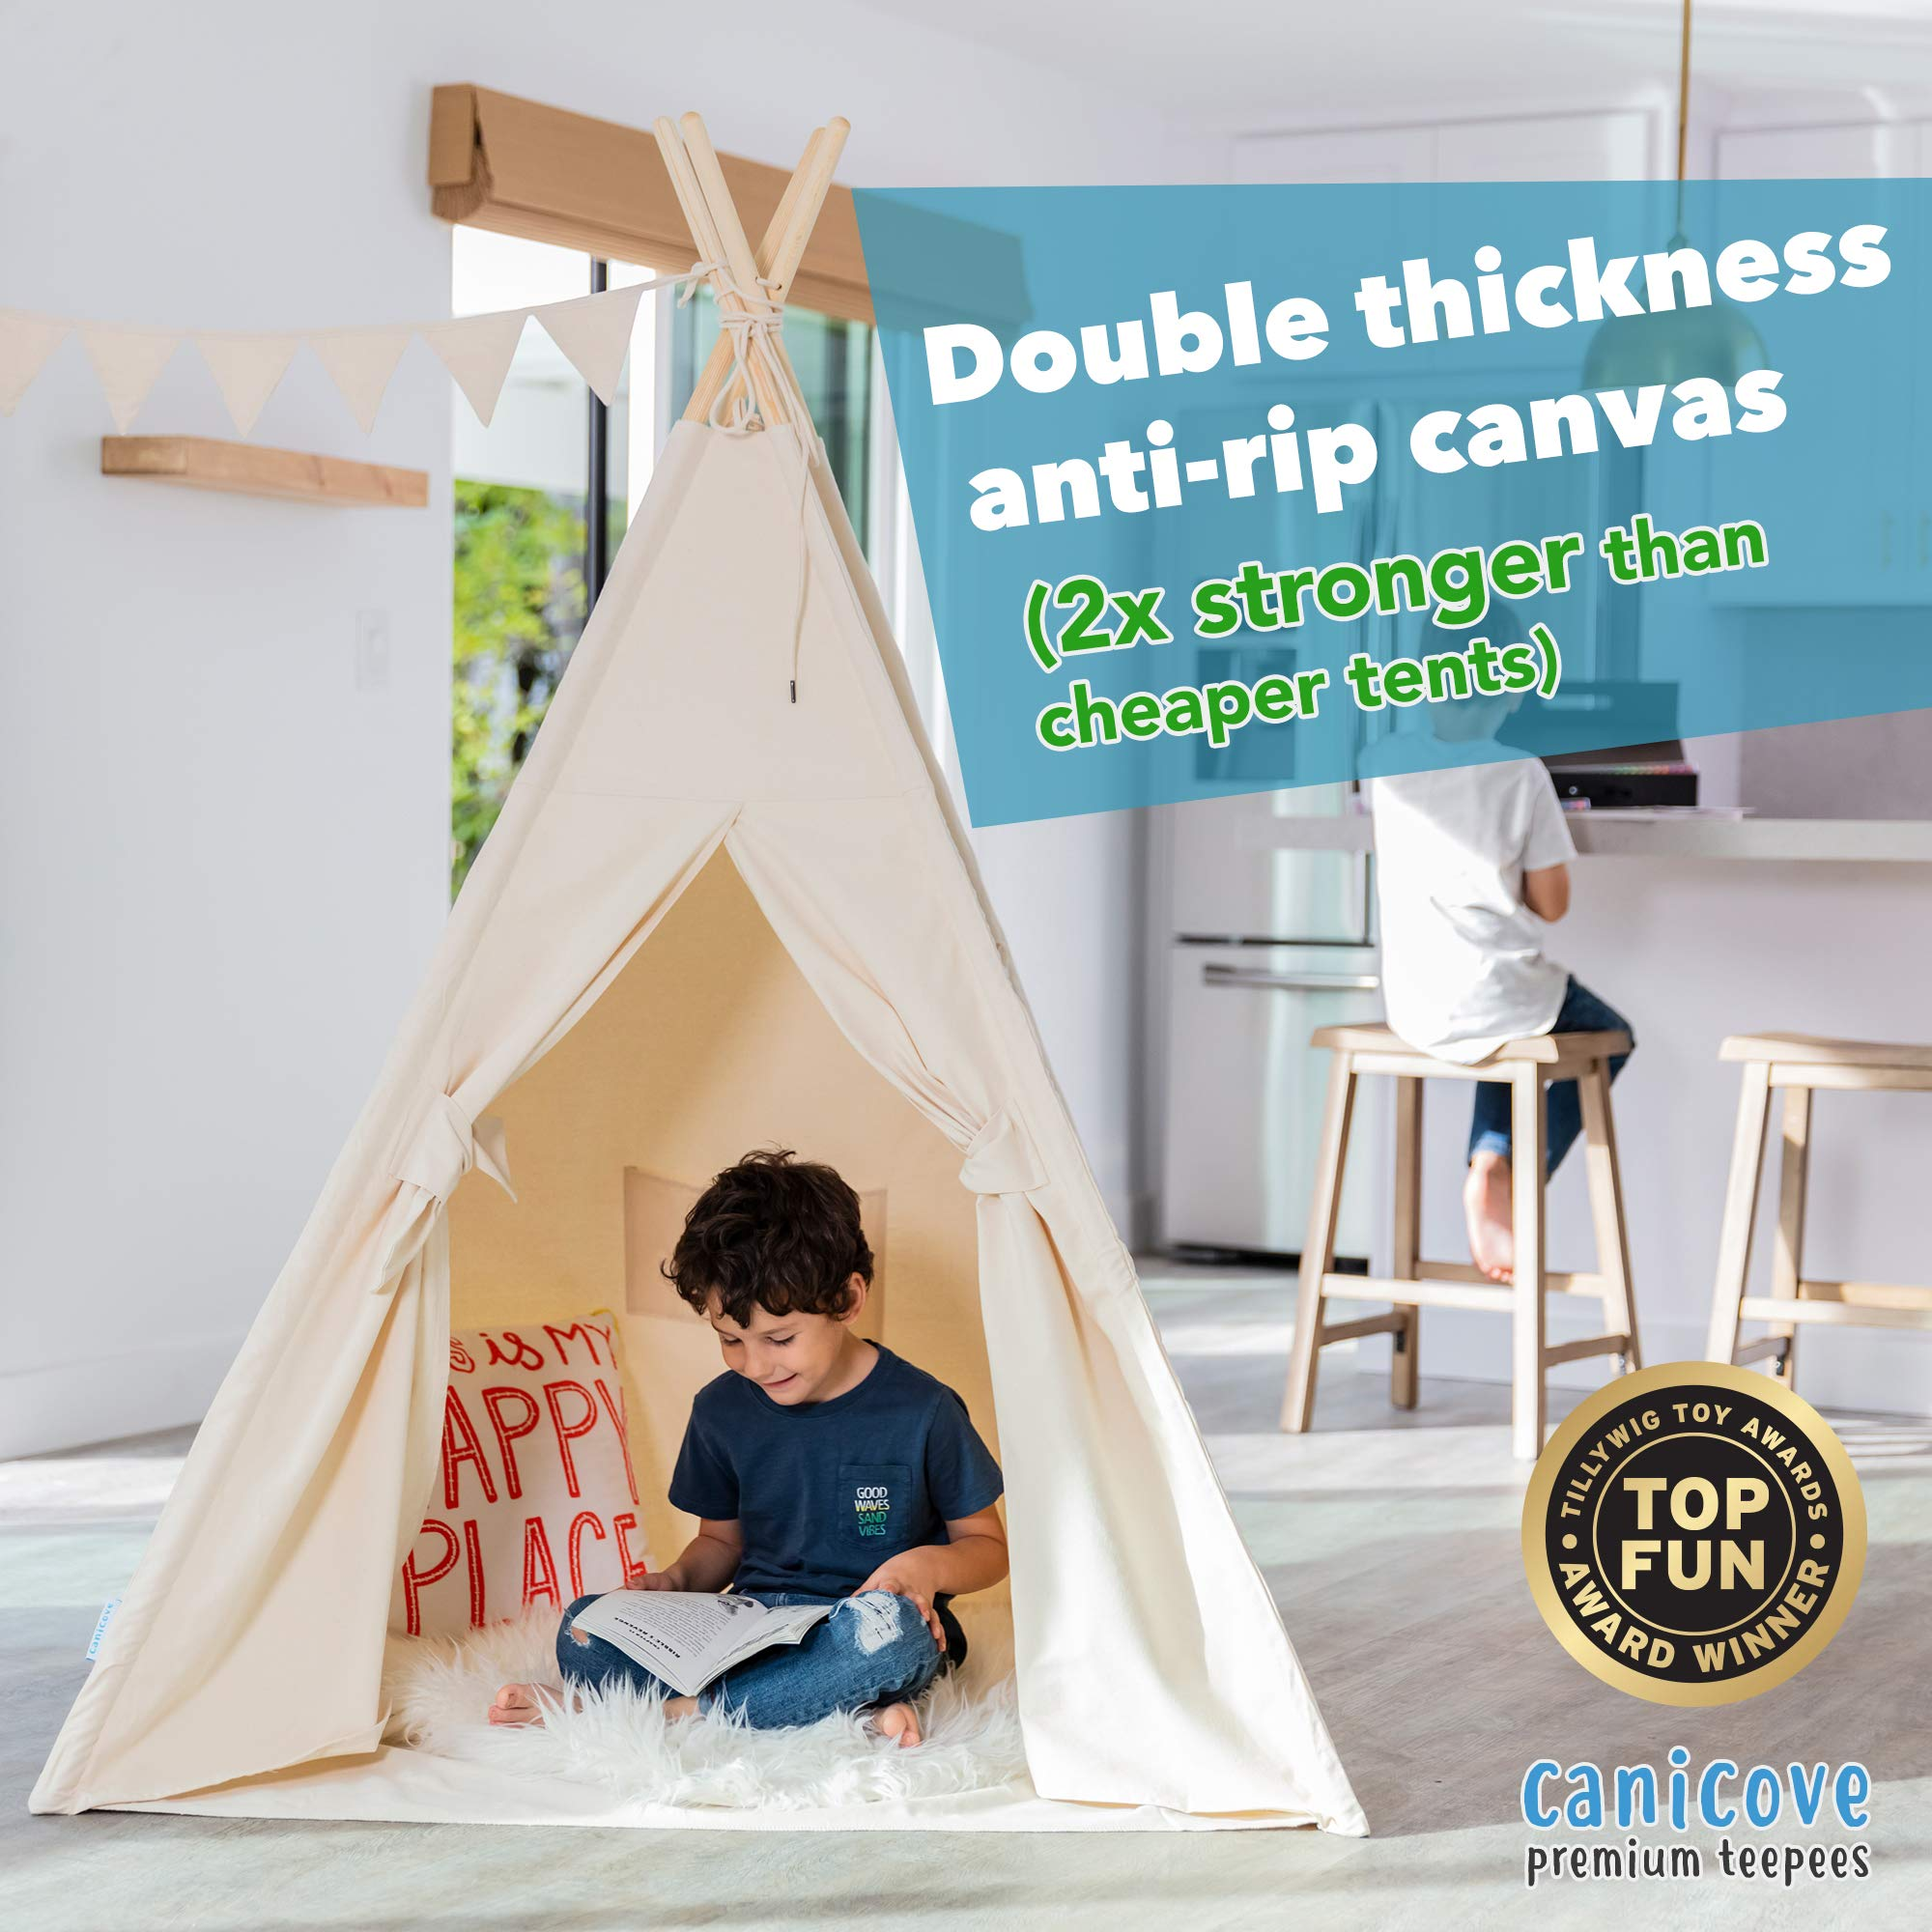 Canicove Teepee Tent for Kids - Award Winning 100% Cotton Play Tent - Large Indoor/Outdoor Tipi for Boys & Girls + Free Fun Flags! by Canicove (Image #2)